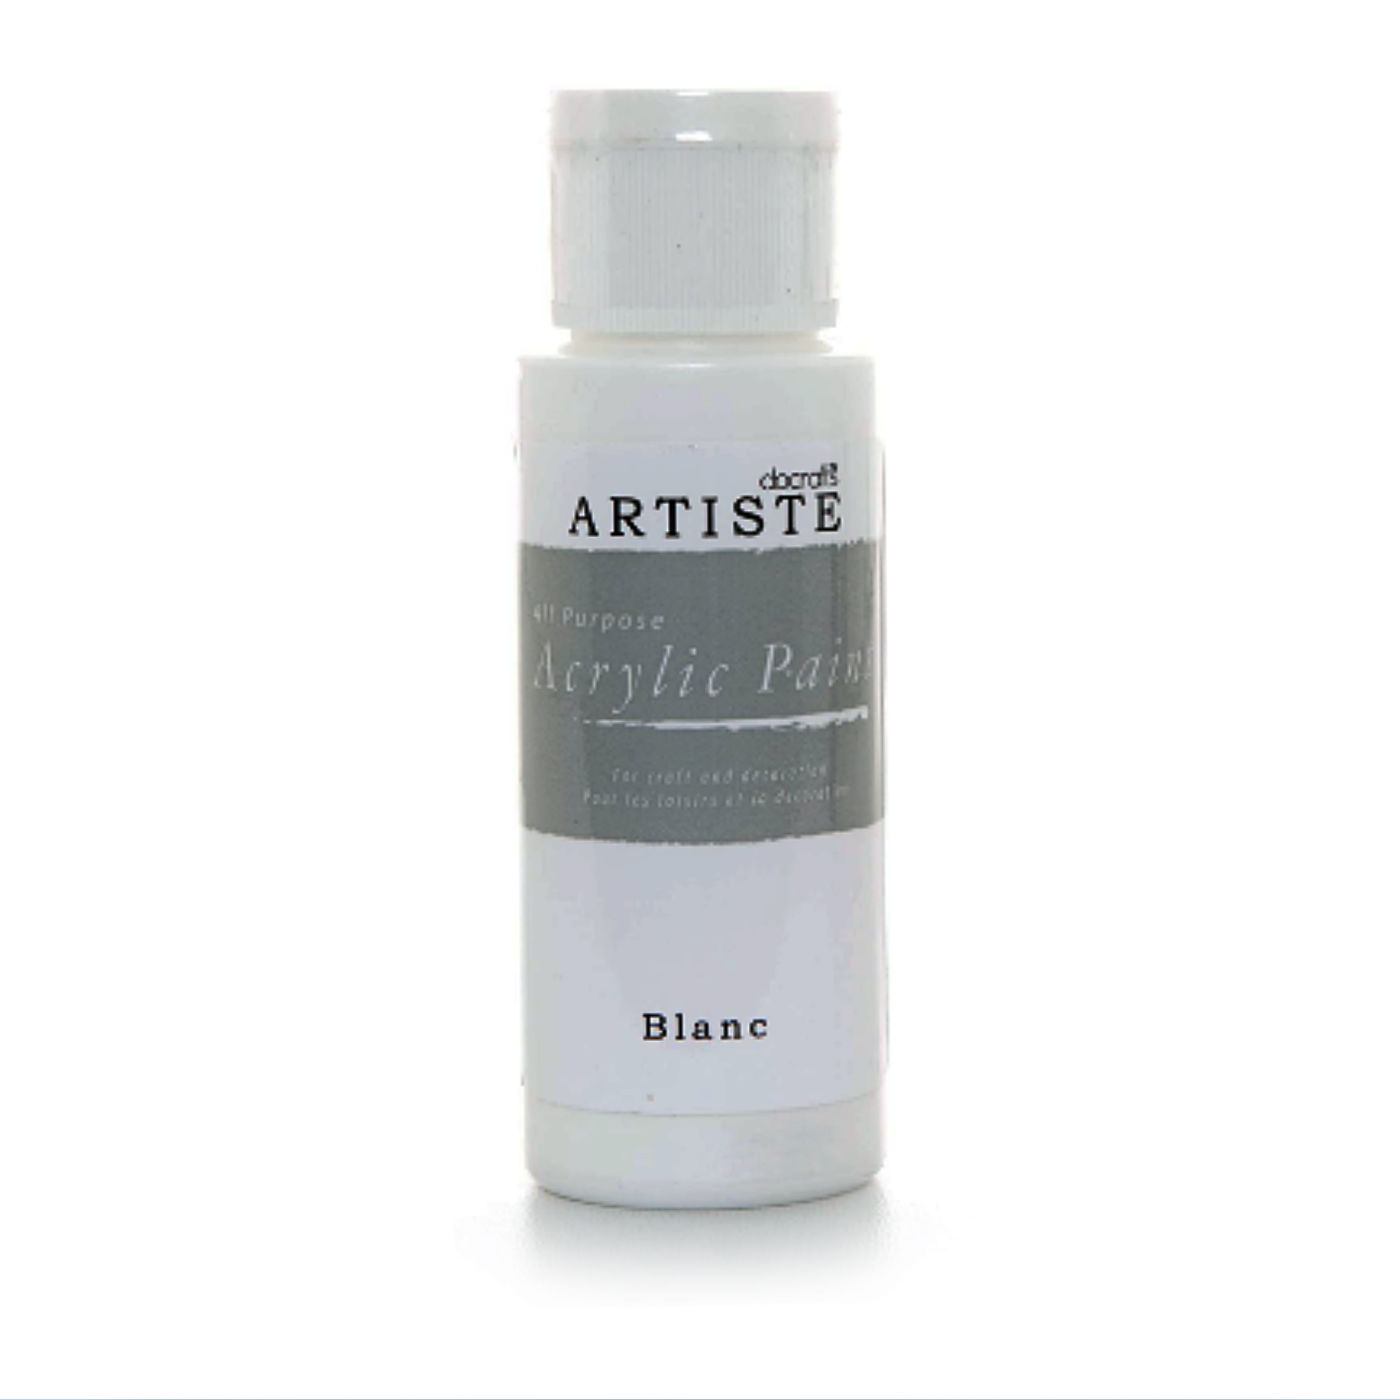 Acrylic Paint, all-purpose, Pendle Valley Workshop, UK White, PC001,